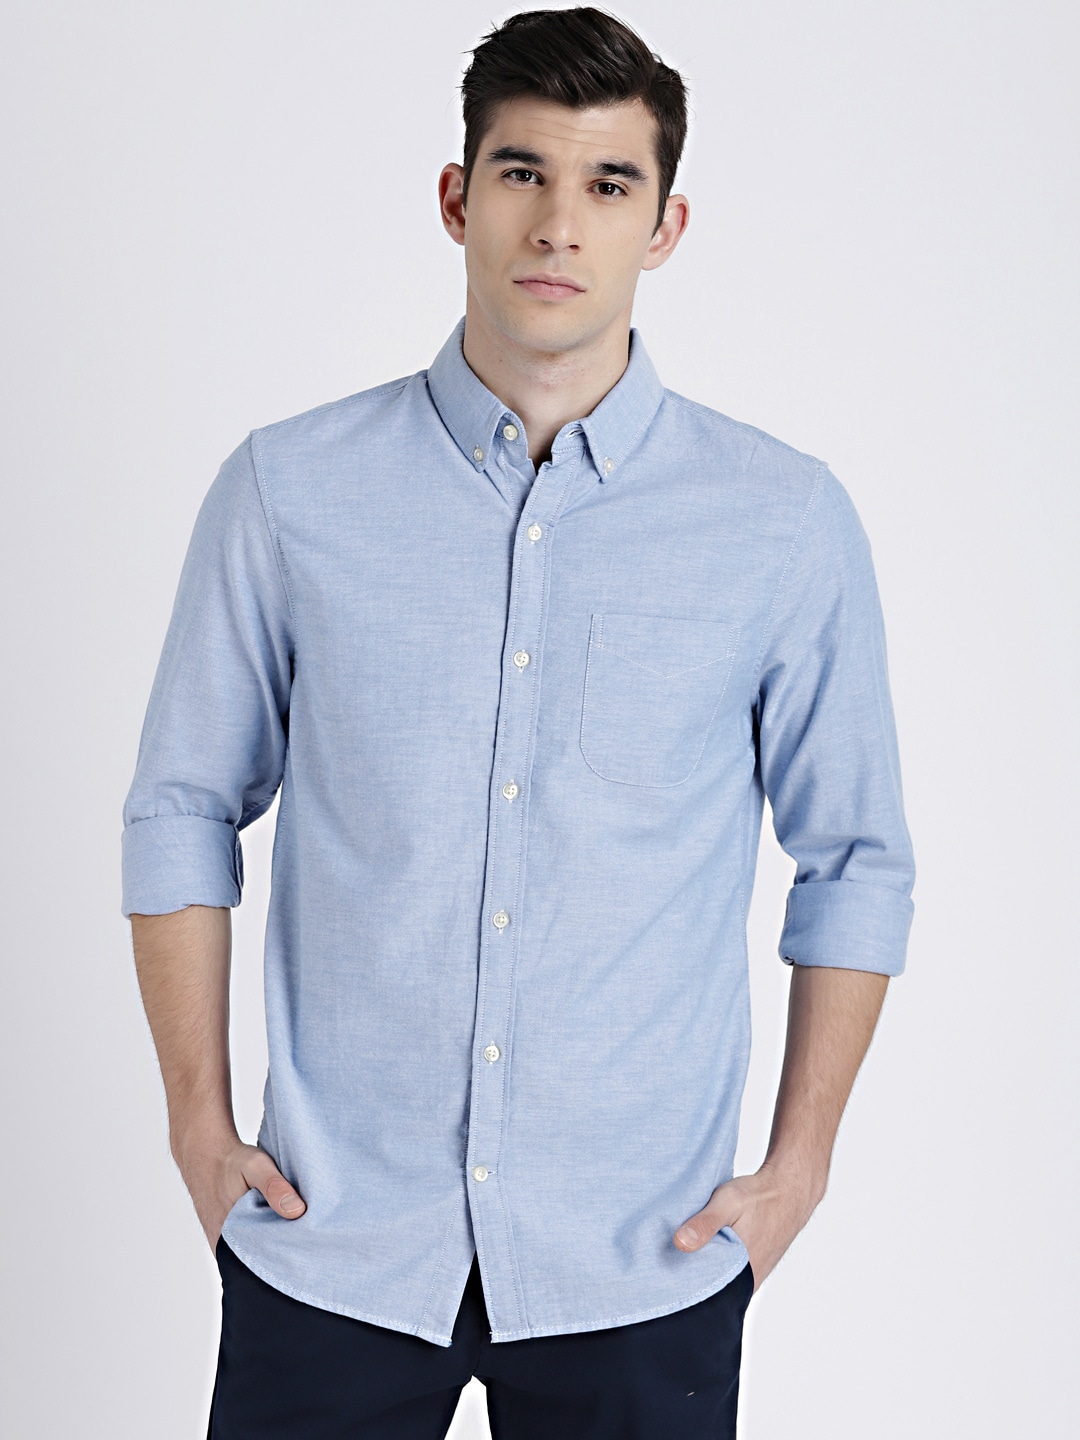 074bff9f4dbc7 Casual Shirts for Men - Buy Men Casual Shirt Online in India